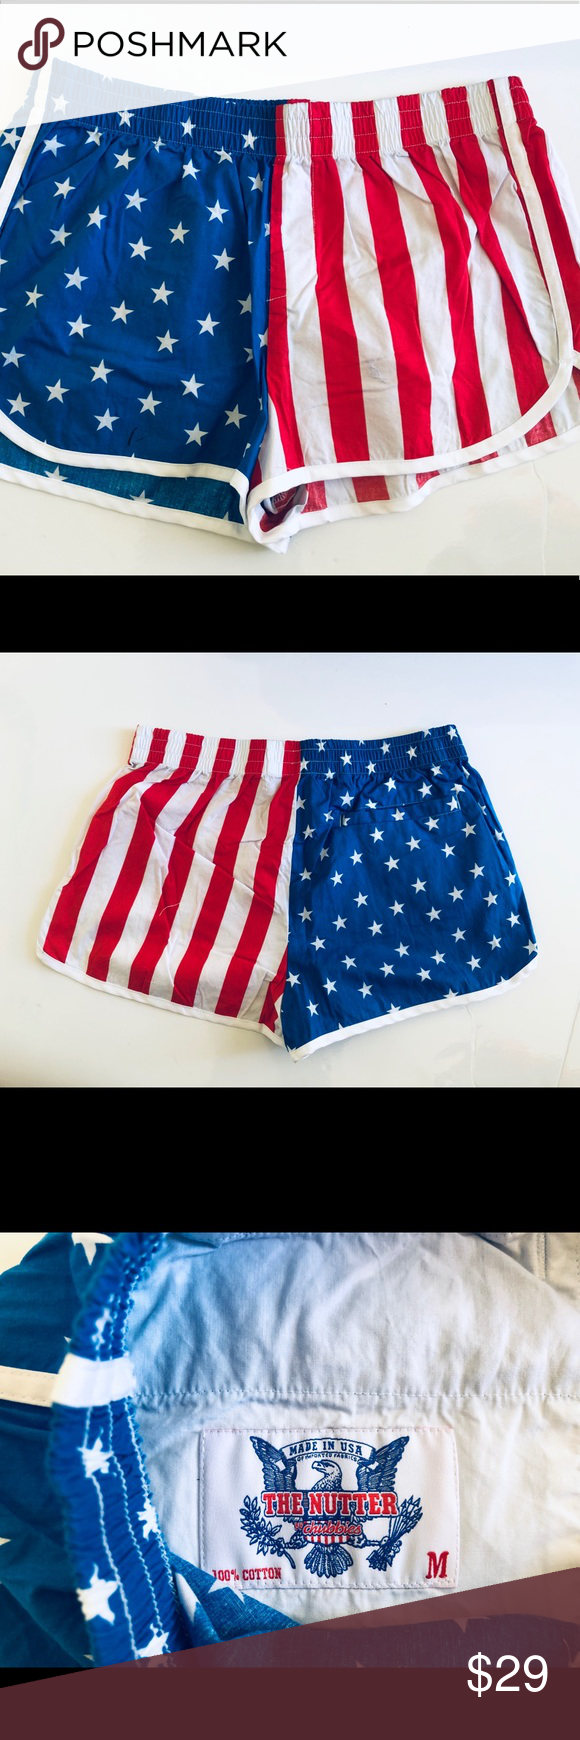 Chubbies Women S American Flag Shorts In 2020 American Flag Shorts Chubbies Shorts Swimsuit Cover